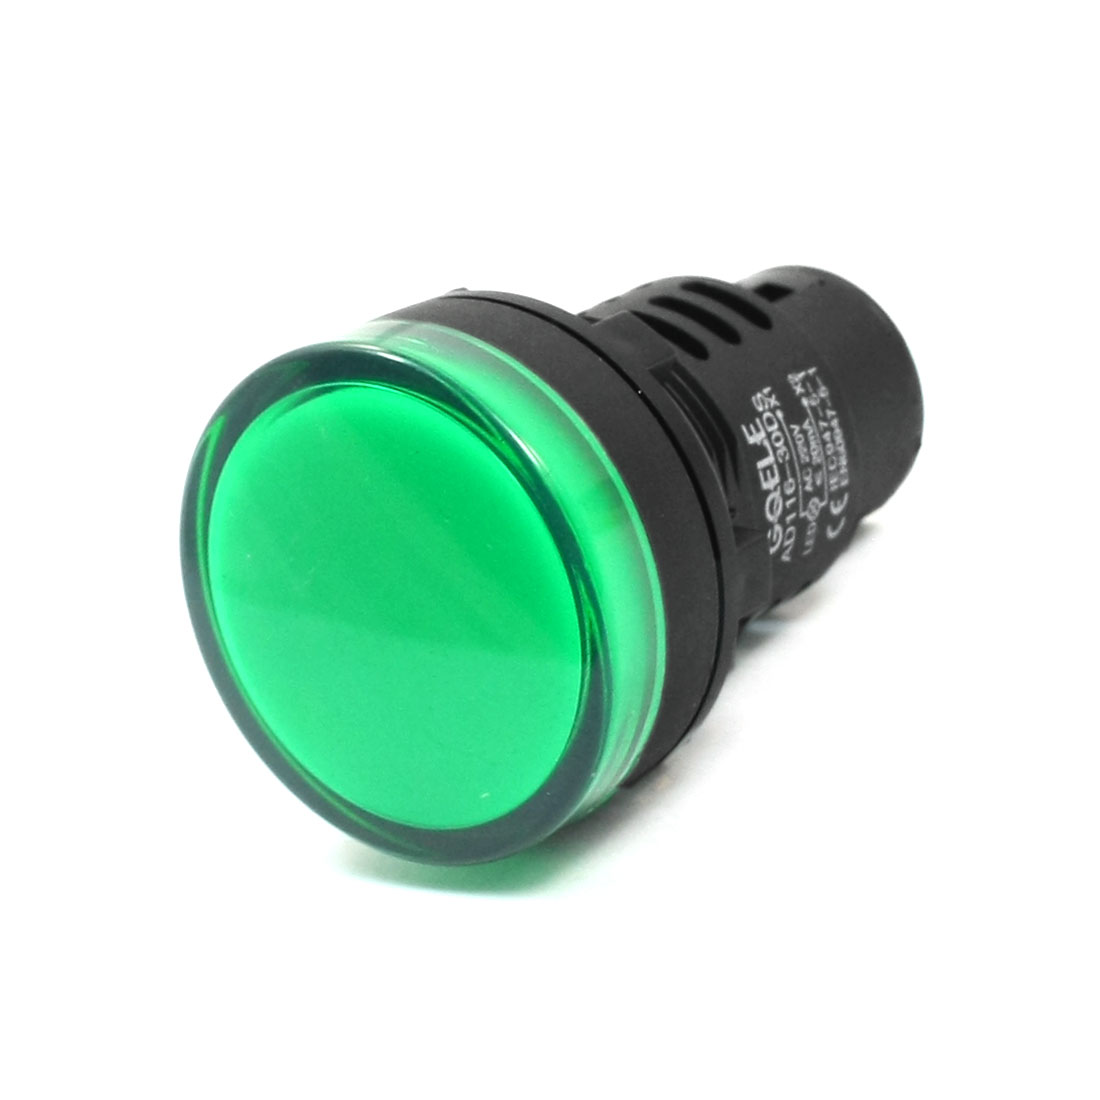 Green LED Pilot Signal Bulb Light Lamp AC 220V 20mA AD116-30DS